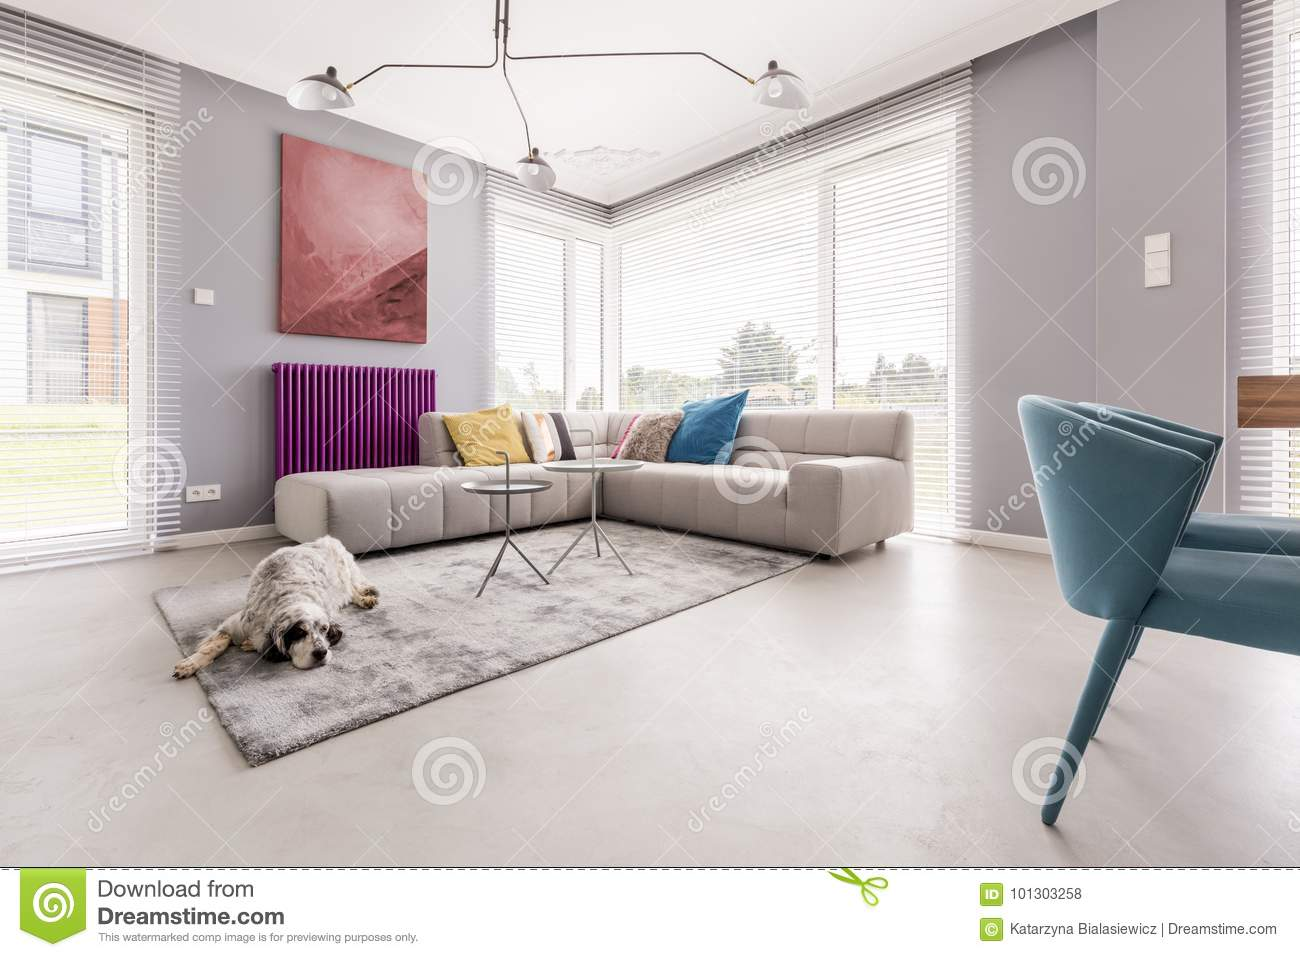 Dog in a house interior stock photo Image of cushions  : dog house interior dog house interior lying soft grey carpet next to large sofa elegant abstract painting 101303258 from www.dreamstime.com size 1300 x 957 jpeg 111kB